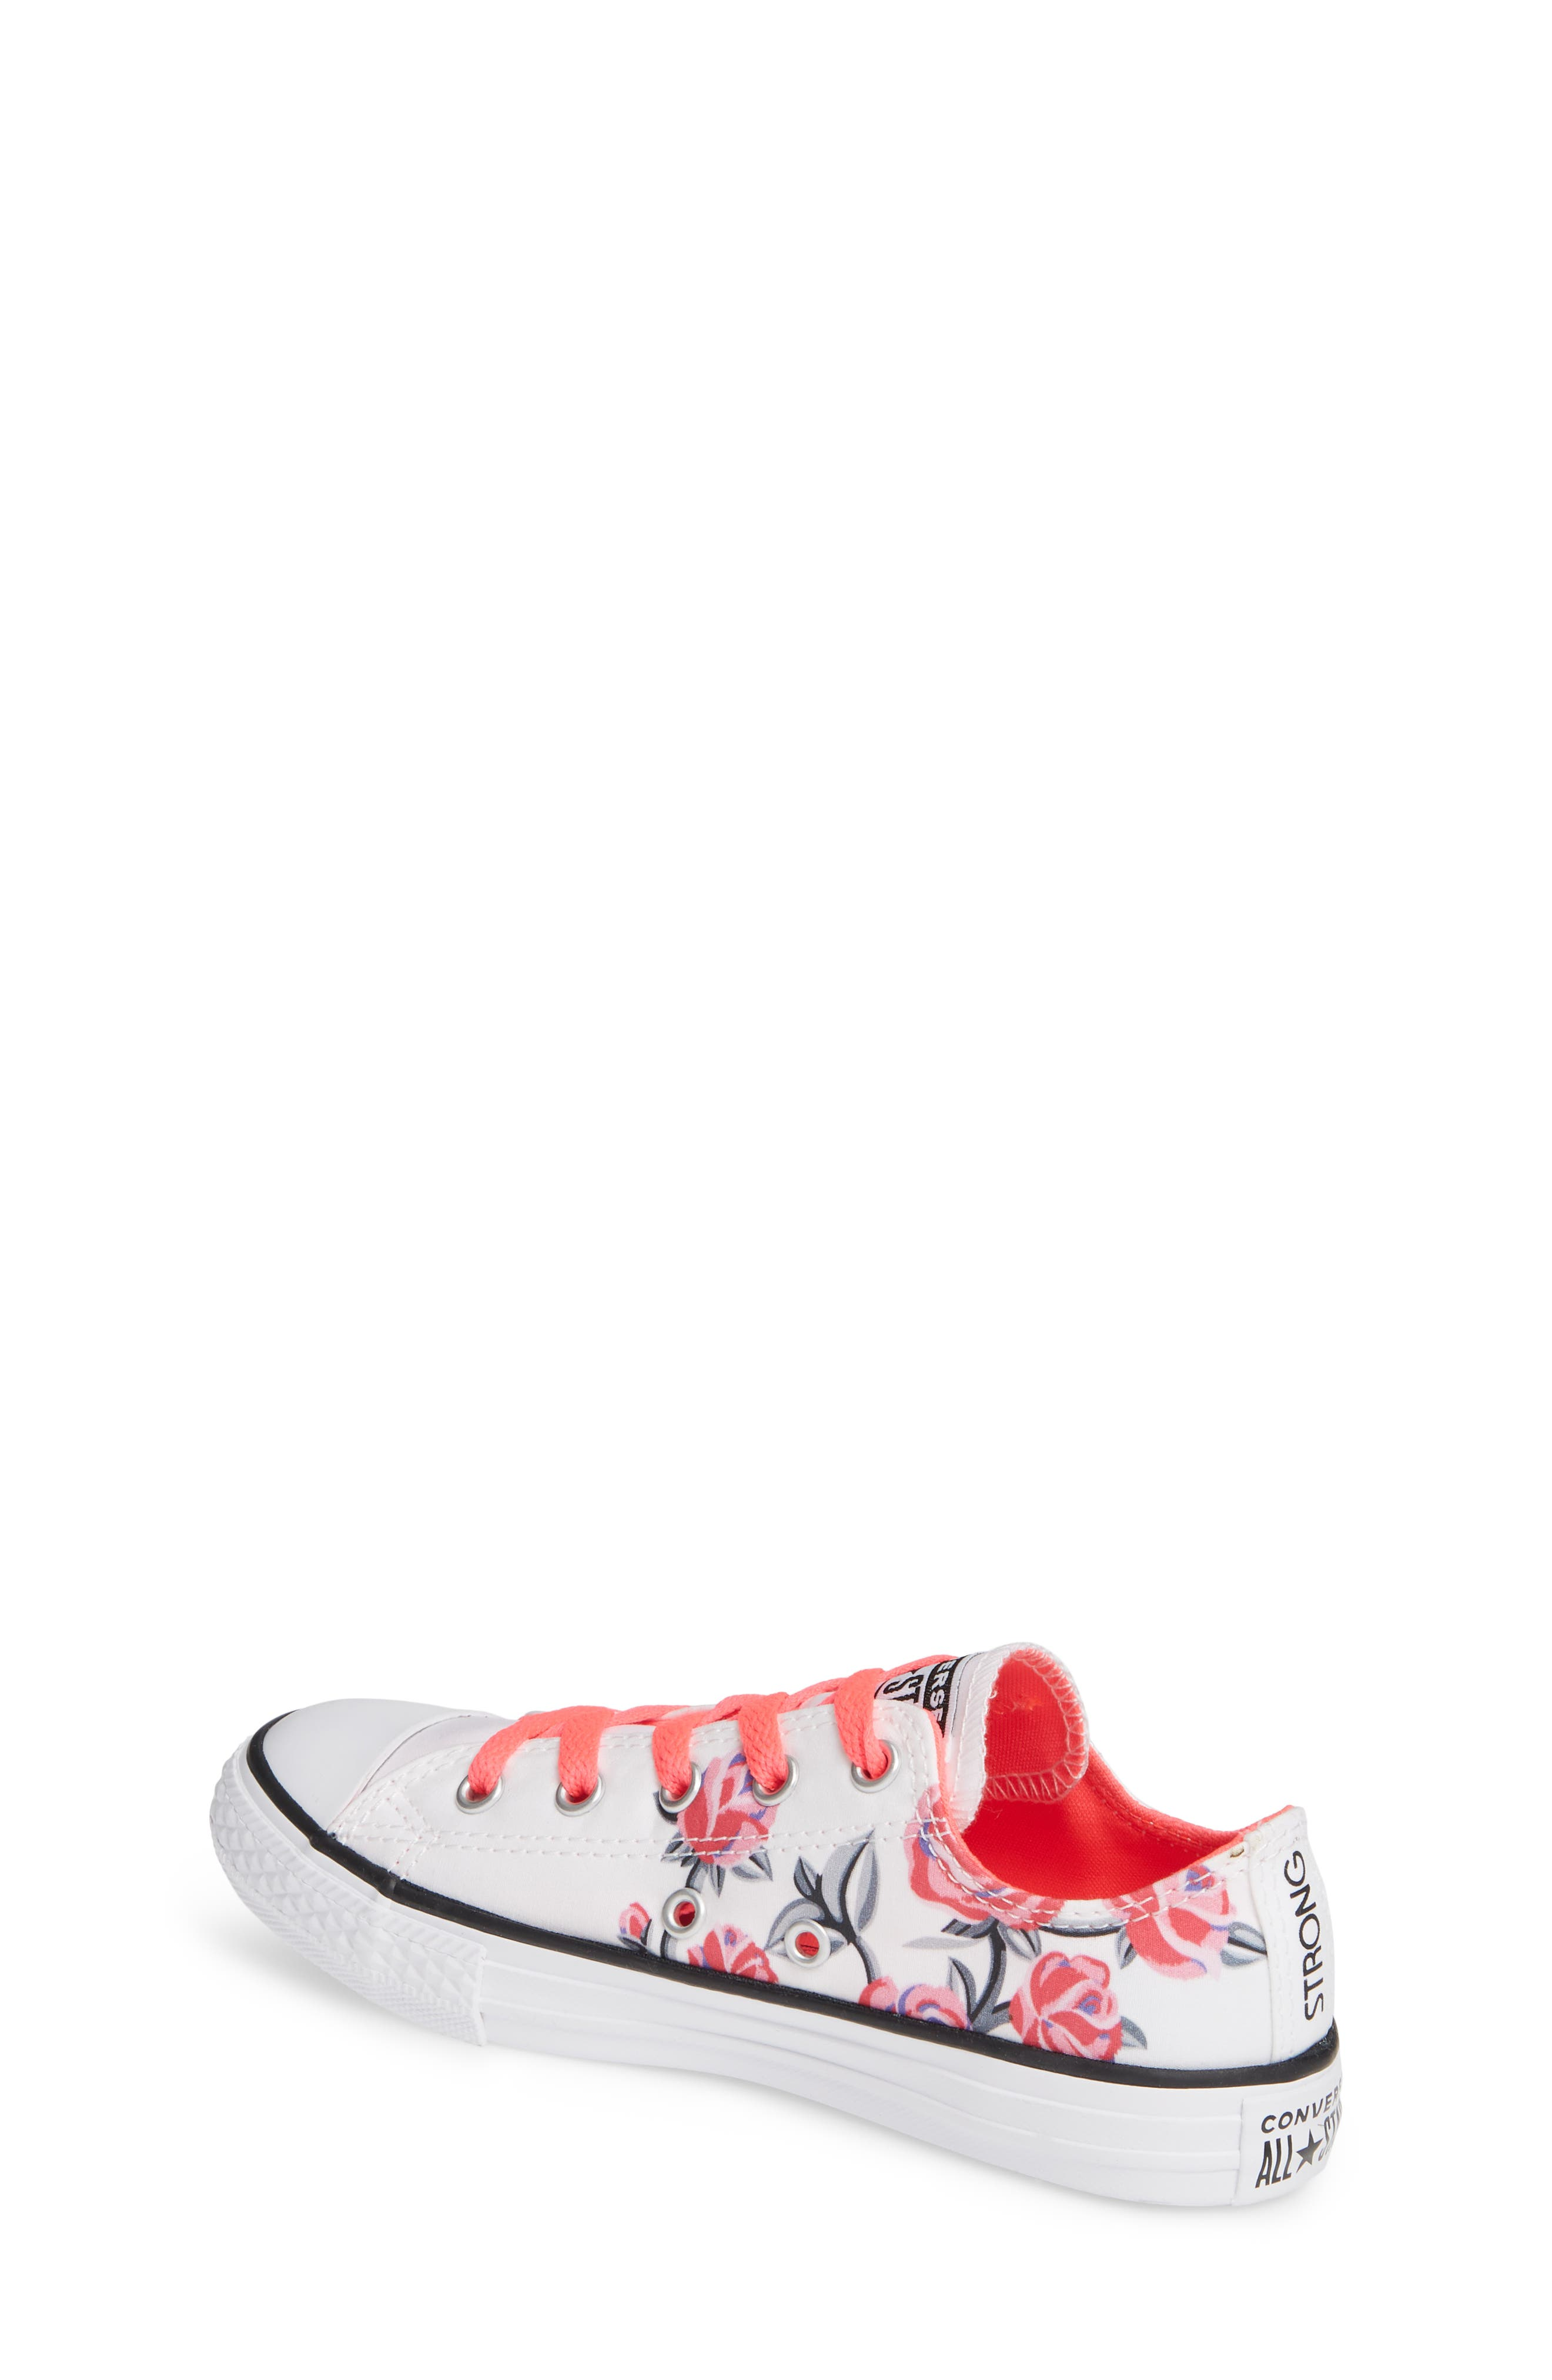 Chuck Taylor<sup>®</sup> All Star<sup>®</sup> Low Top Sneaker,                             Alternate thumbnail 2, color,                             WHITE/ RACER PINK/ BLACK